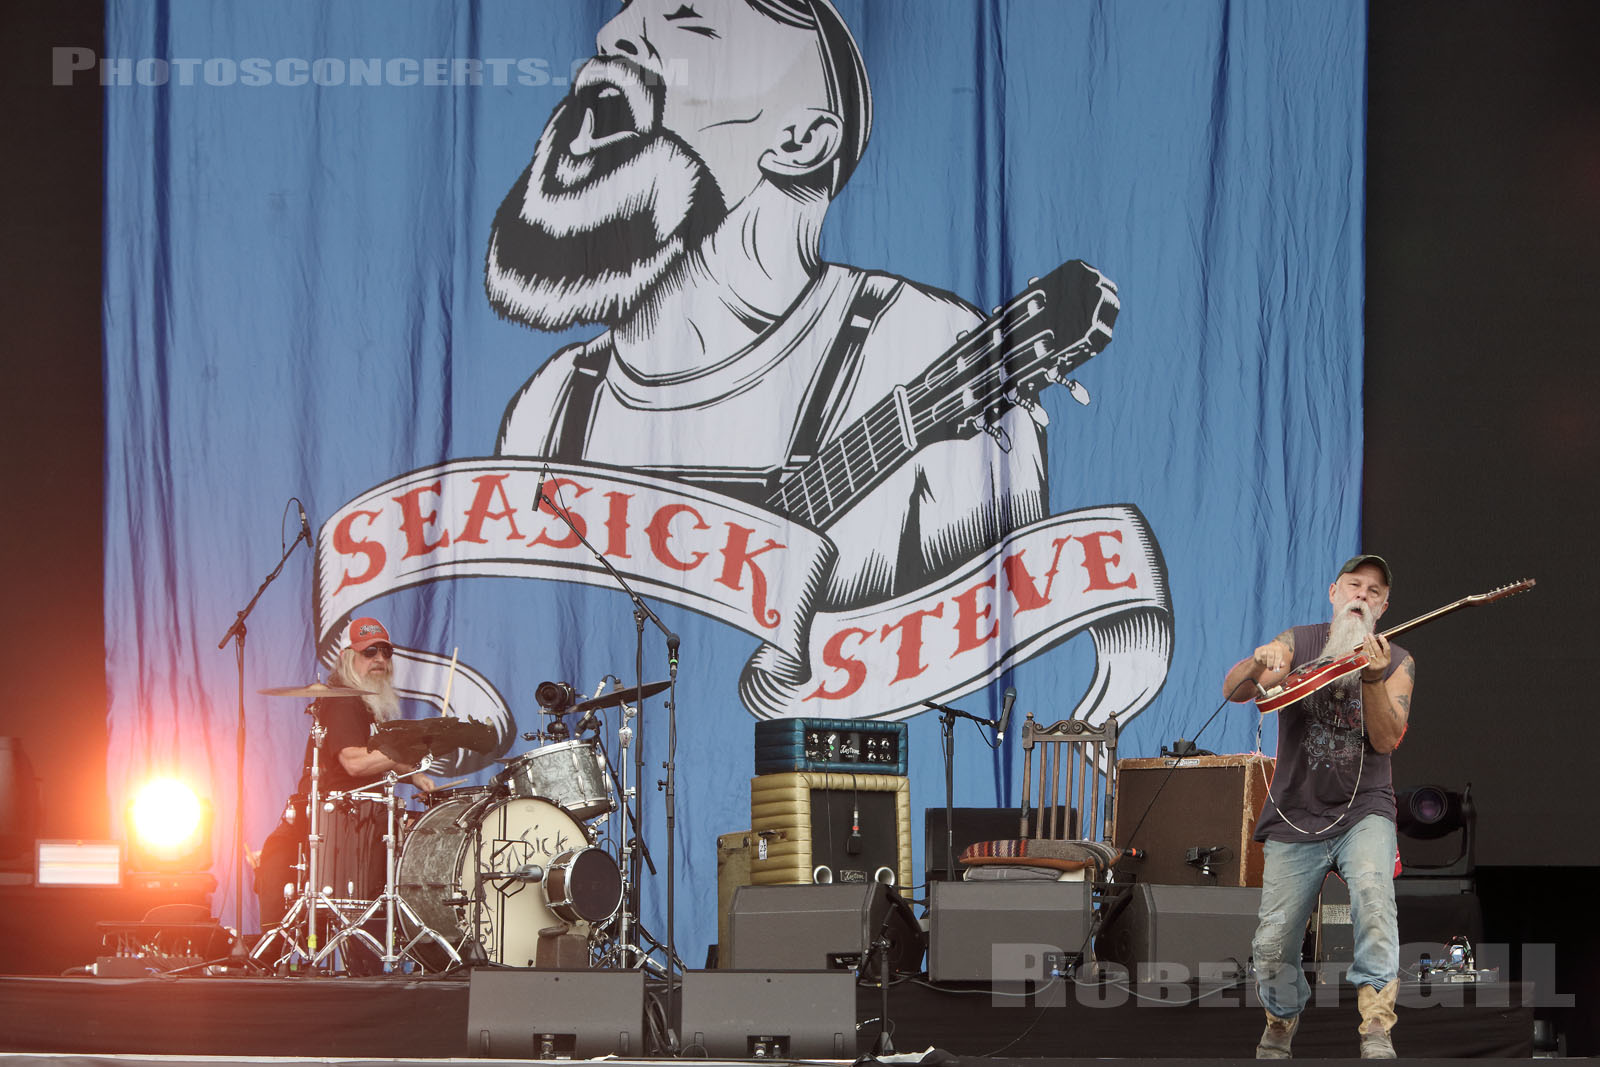 SEASICK STEVE - 2017-07-23 - PARIS - Hippodrome de Longchamp - Main Stage 2